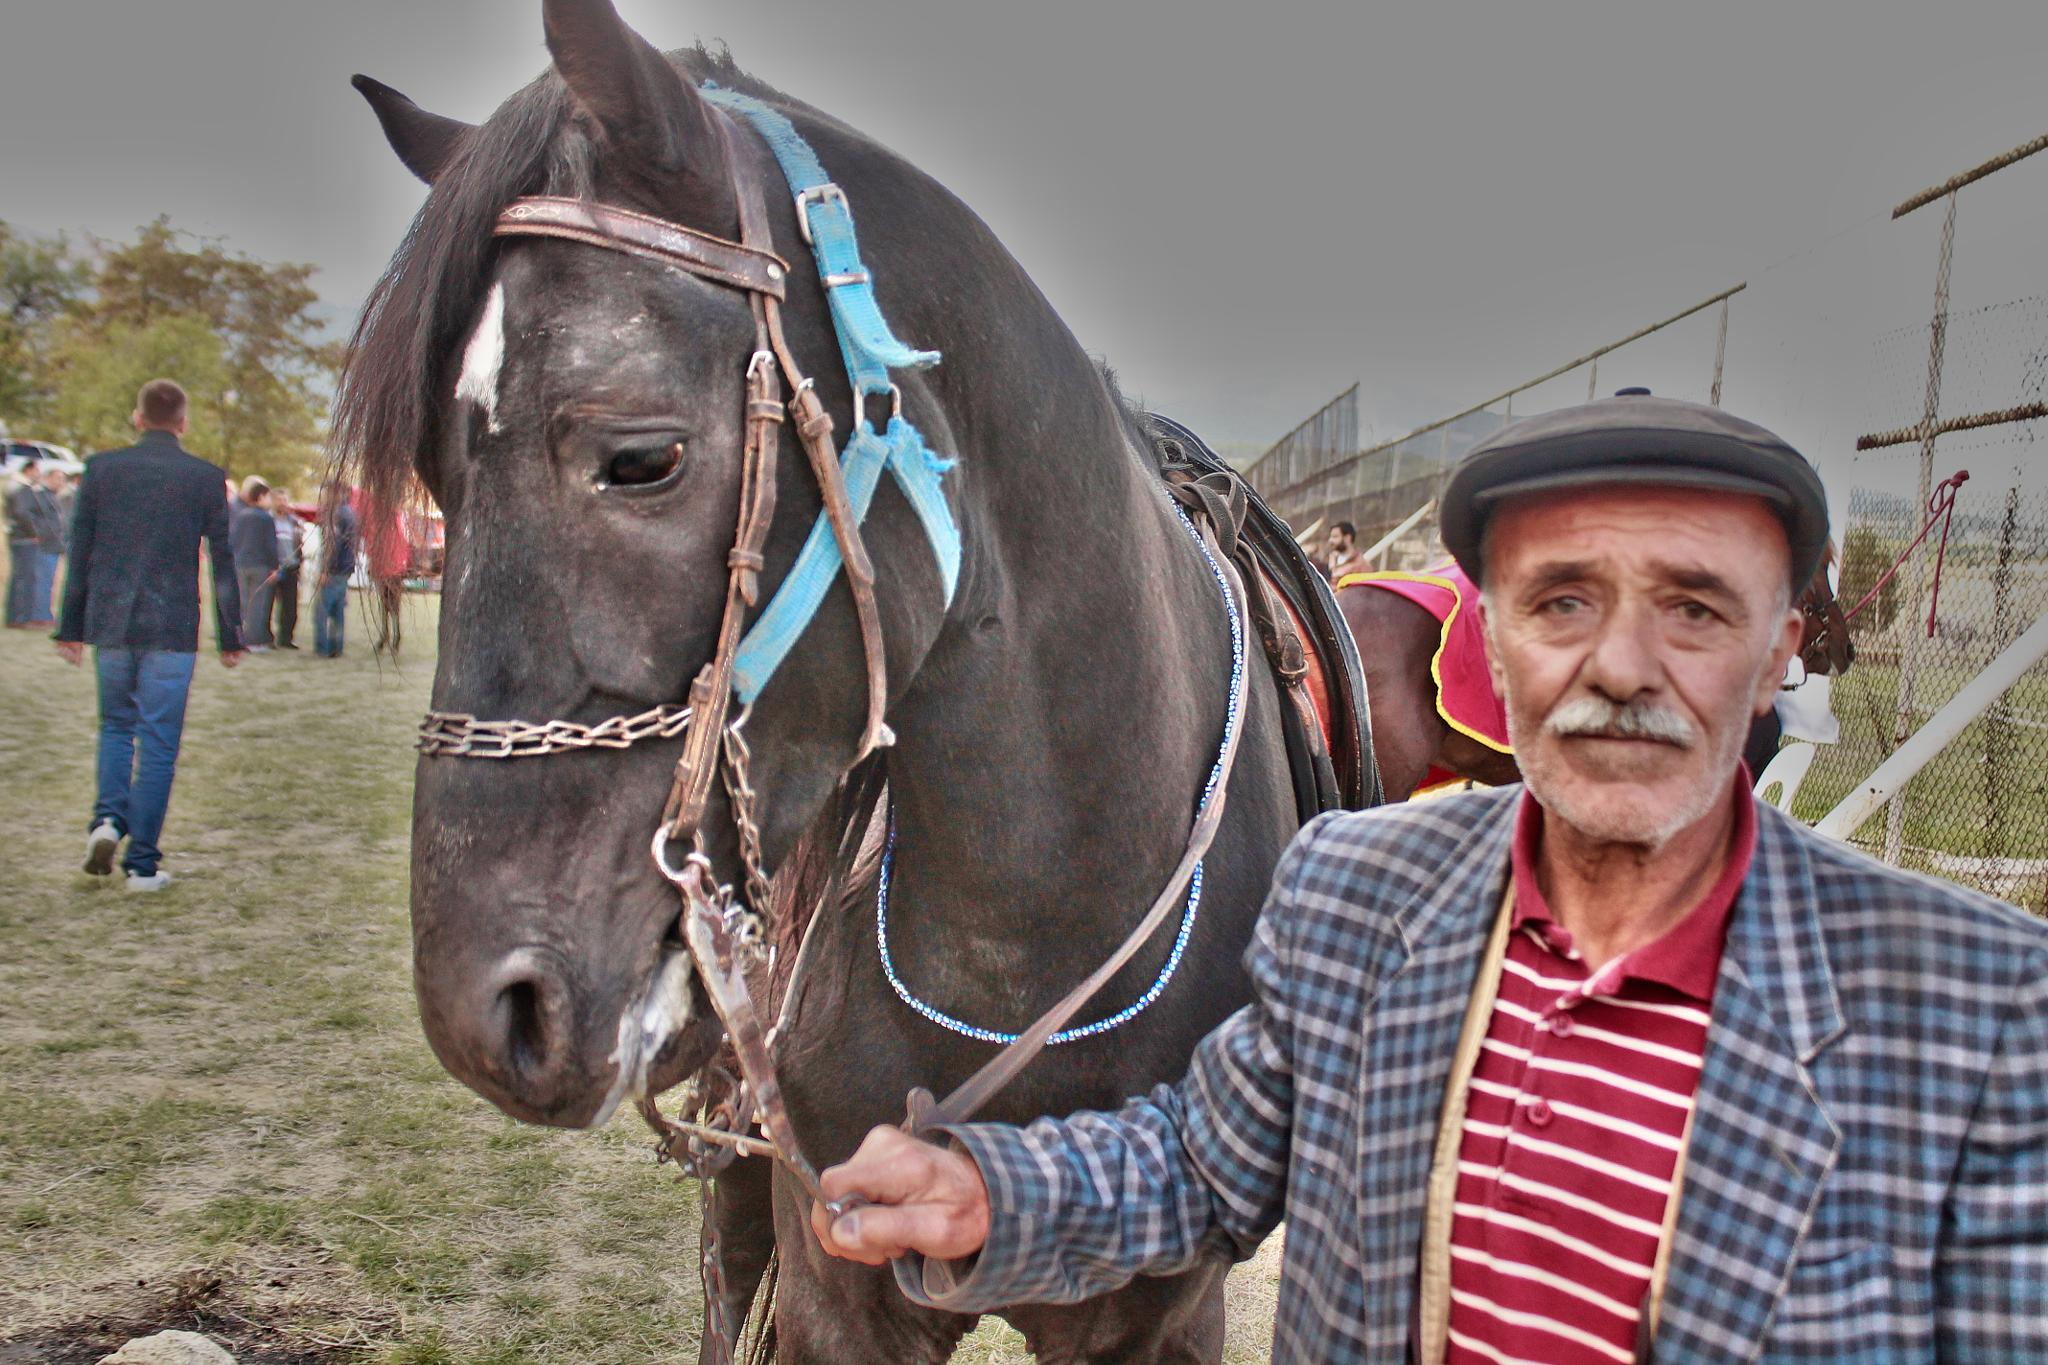 Horse and owner by Ayberk SOYLU